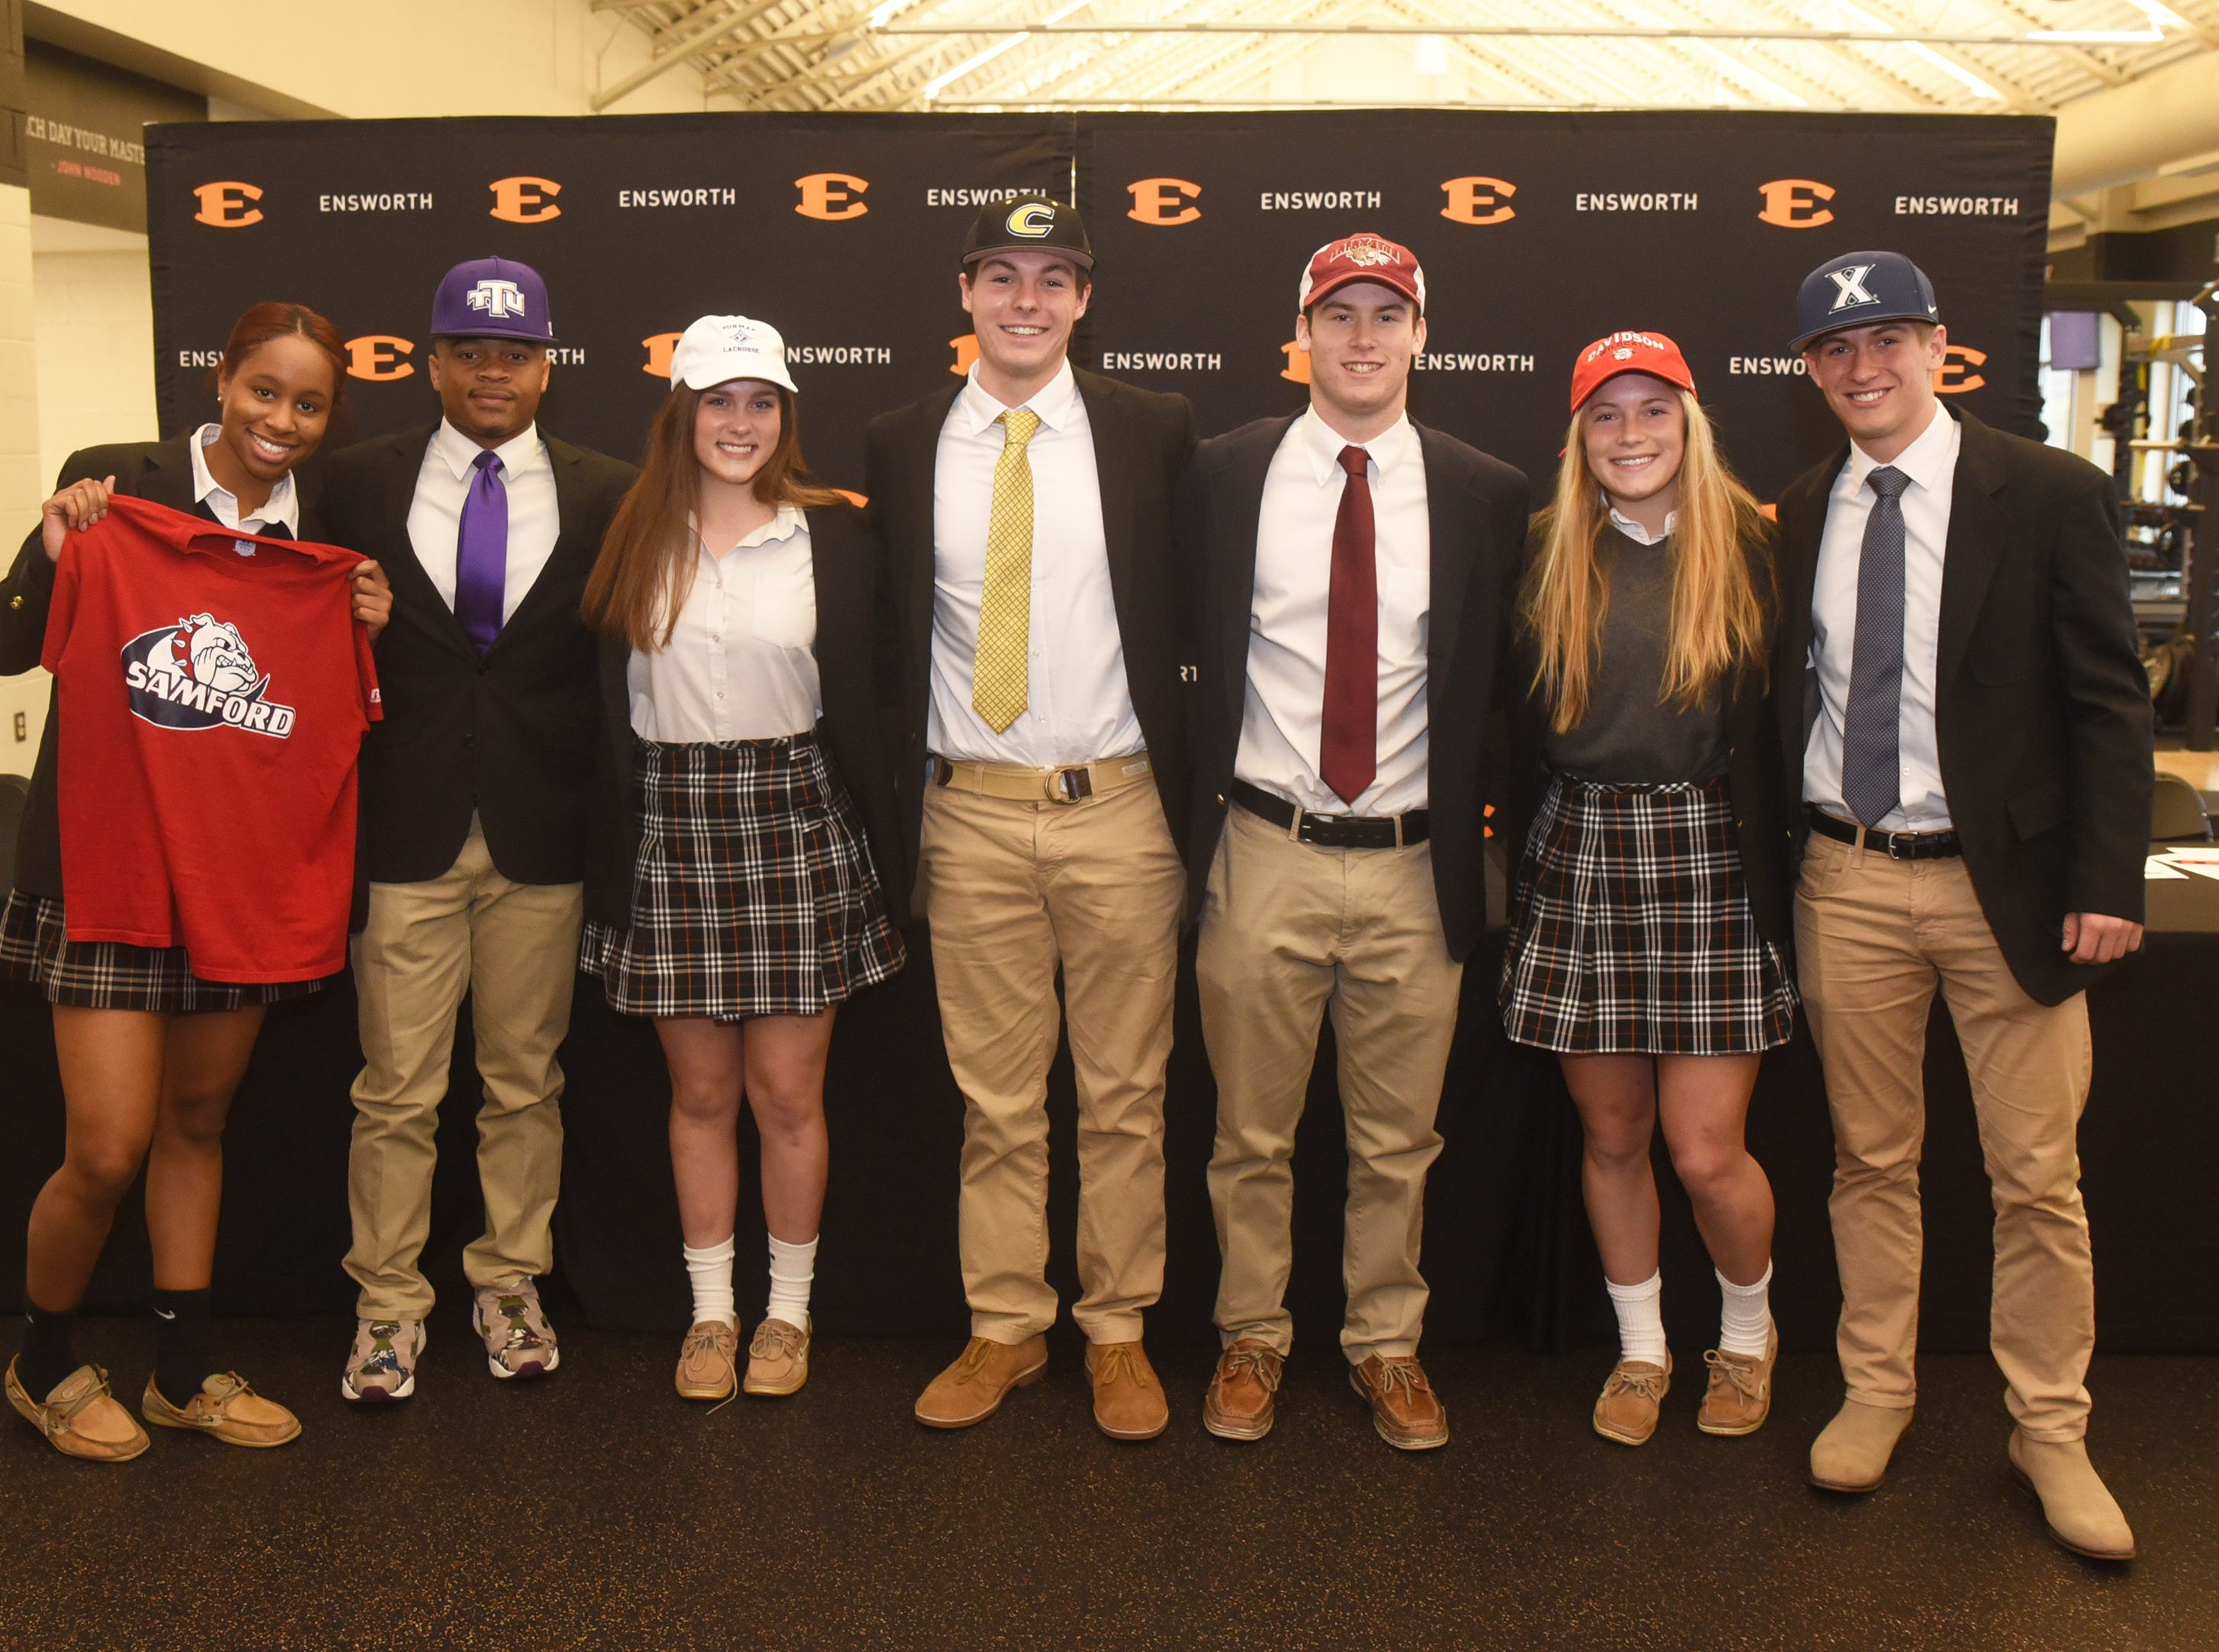 Ensworth athletes that signed on Wednesday include JaTorria Lee (Samford track), Elijah Brooks (Tennessee Tech baseball), McClean Whitson (Furman lacrosse), Gage Young (Centre College baseball), Patrick Vandenbergh (Lafayette baseball), Hailey Braemer (Davidson soccer) and Garrett Schultz (Xavier baseball).